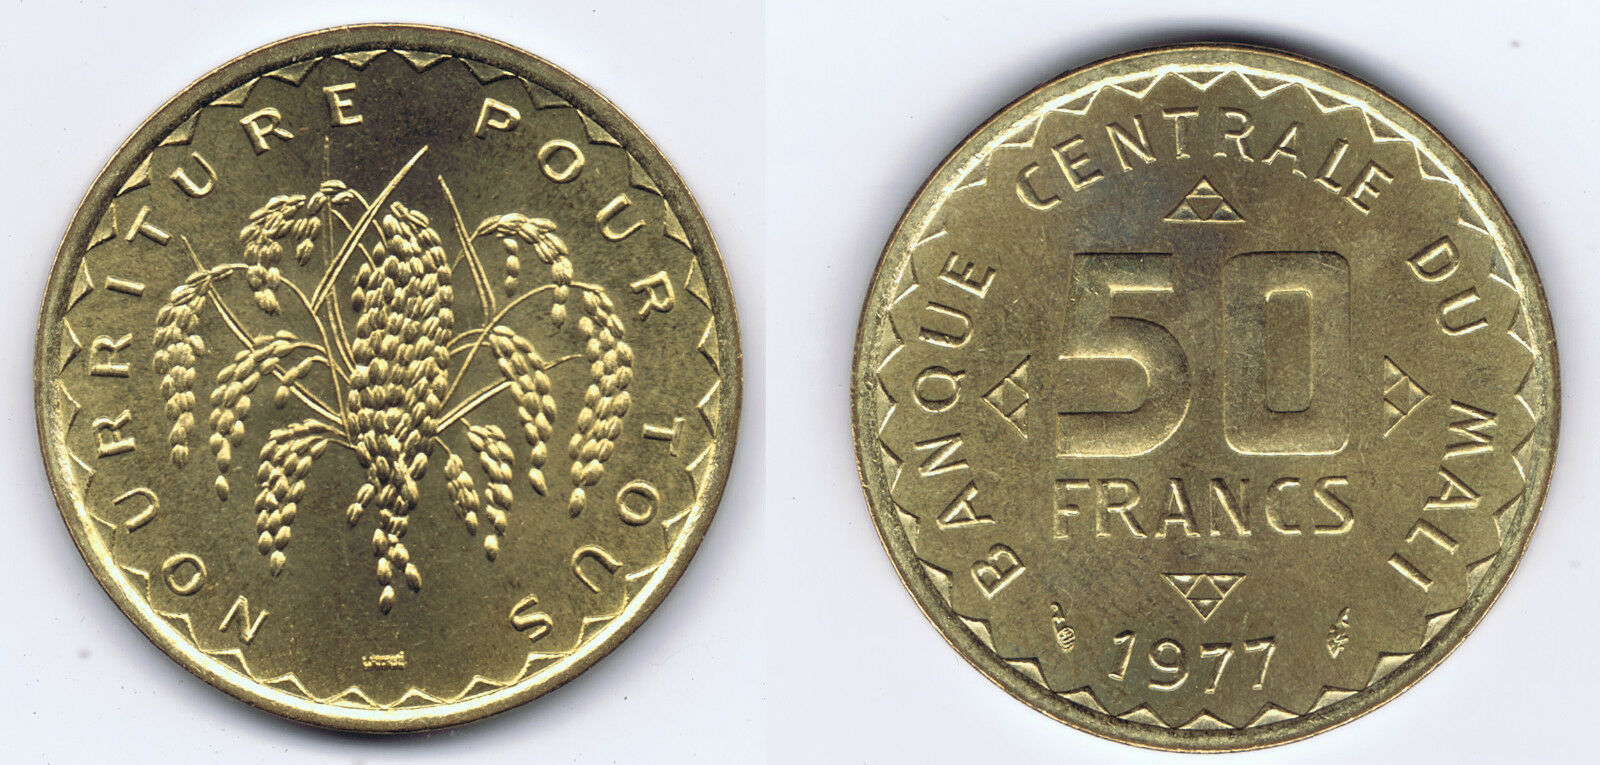 WHOLESALE 10 UNCIRCULATED MALI FAO 50 FRANCS COINS 1977 KM# 9 FOOD & AGRICULTURE